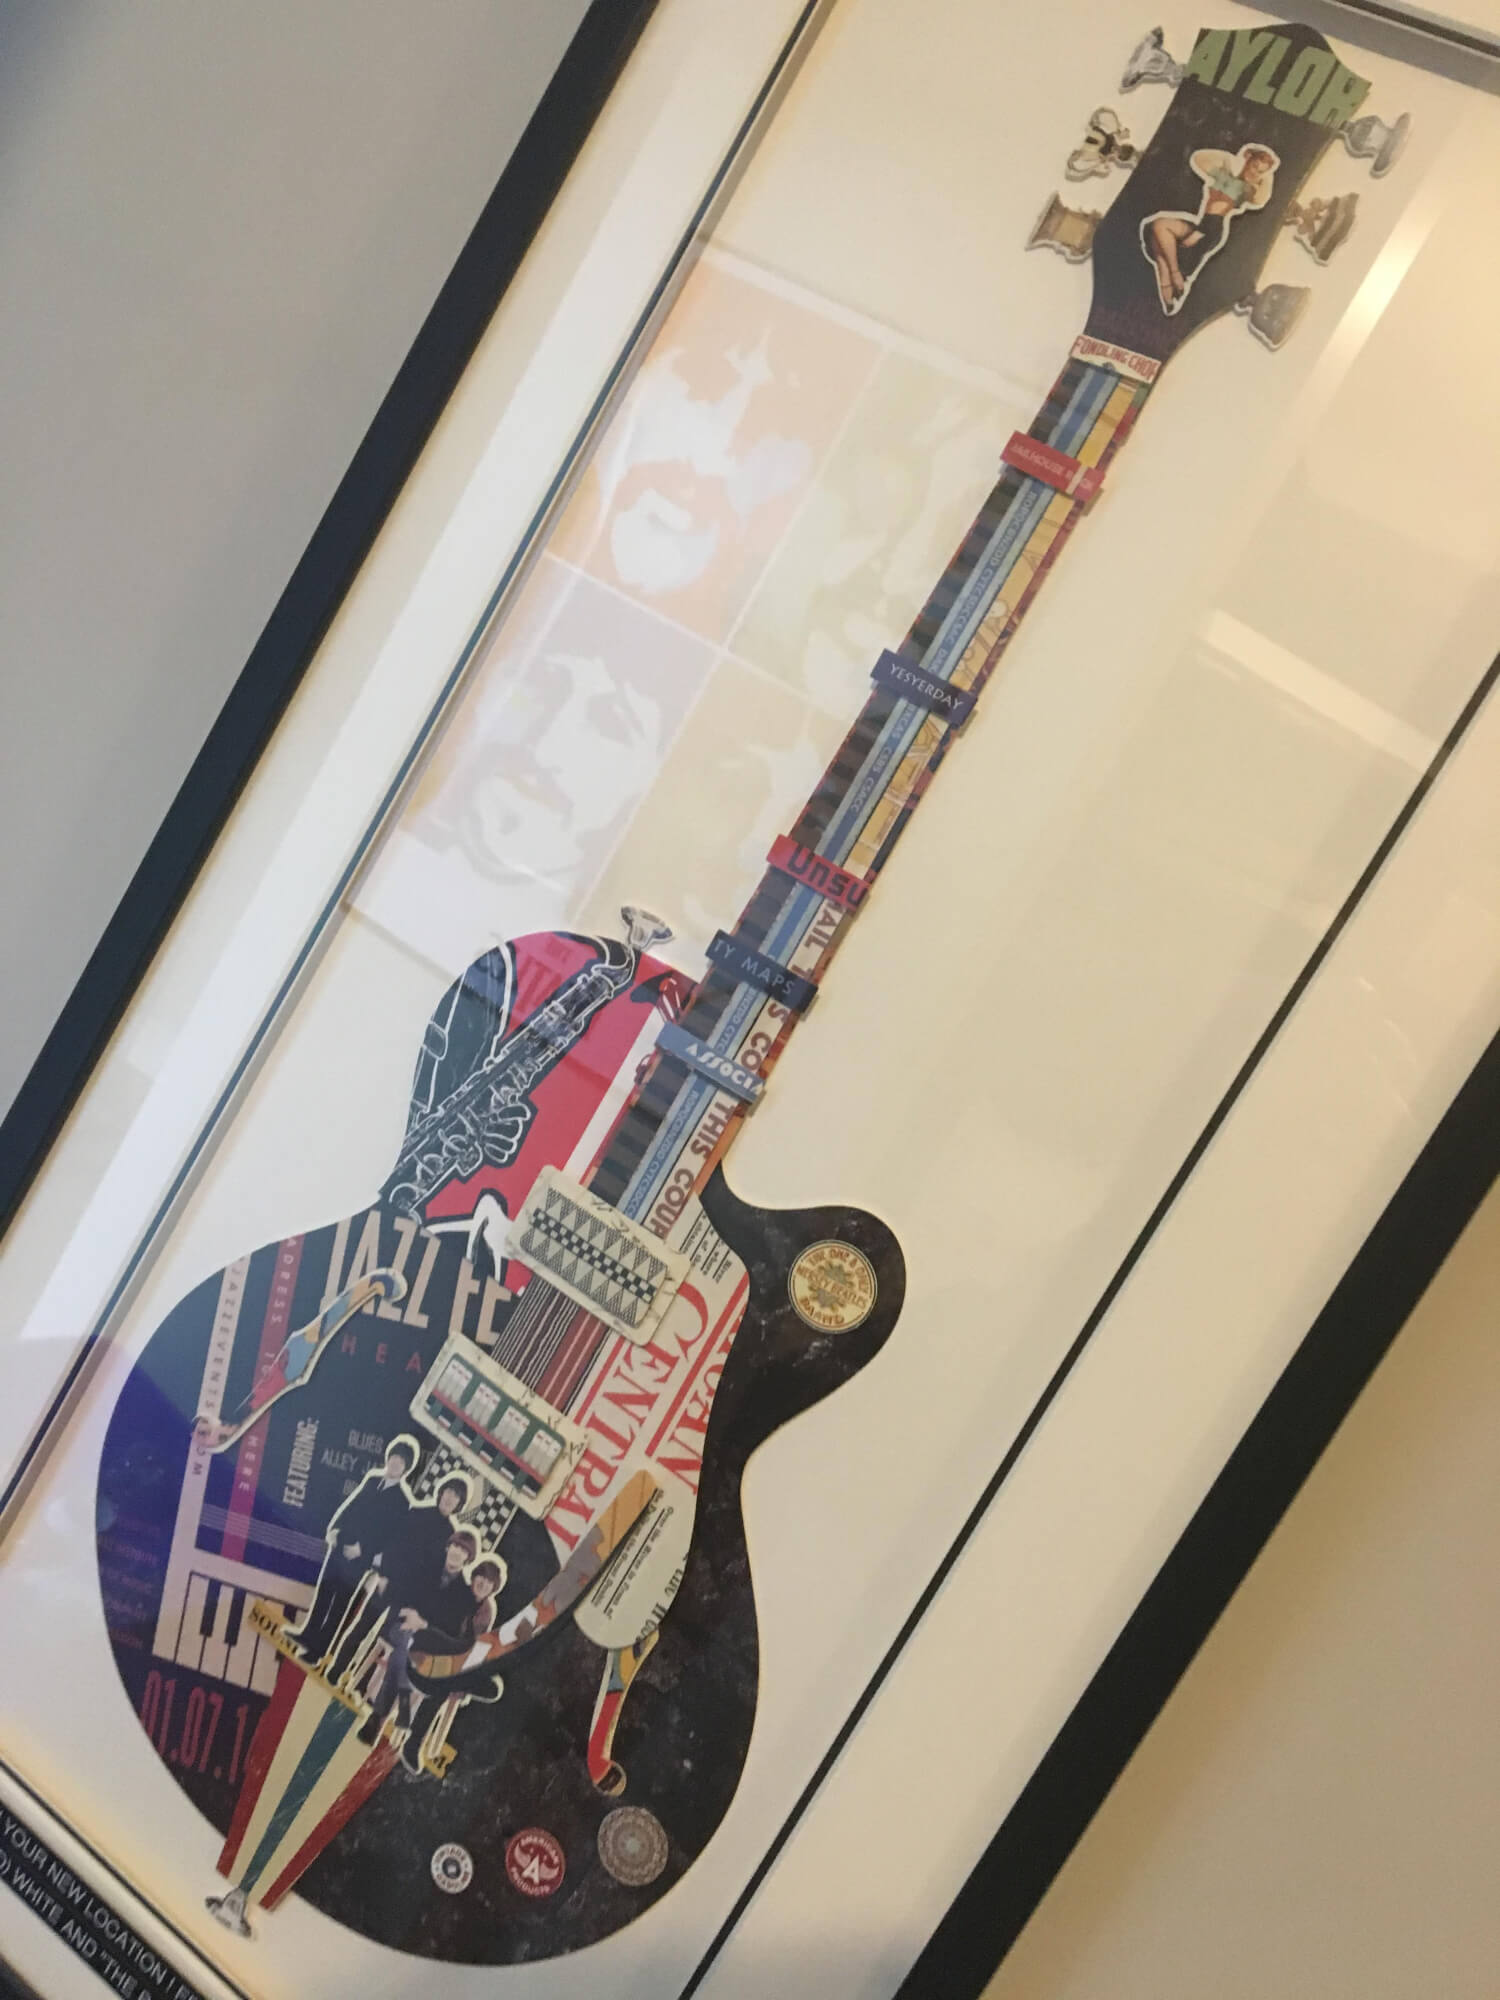 School of Rock Calgary South: we have great artwork on the walls